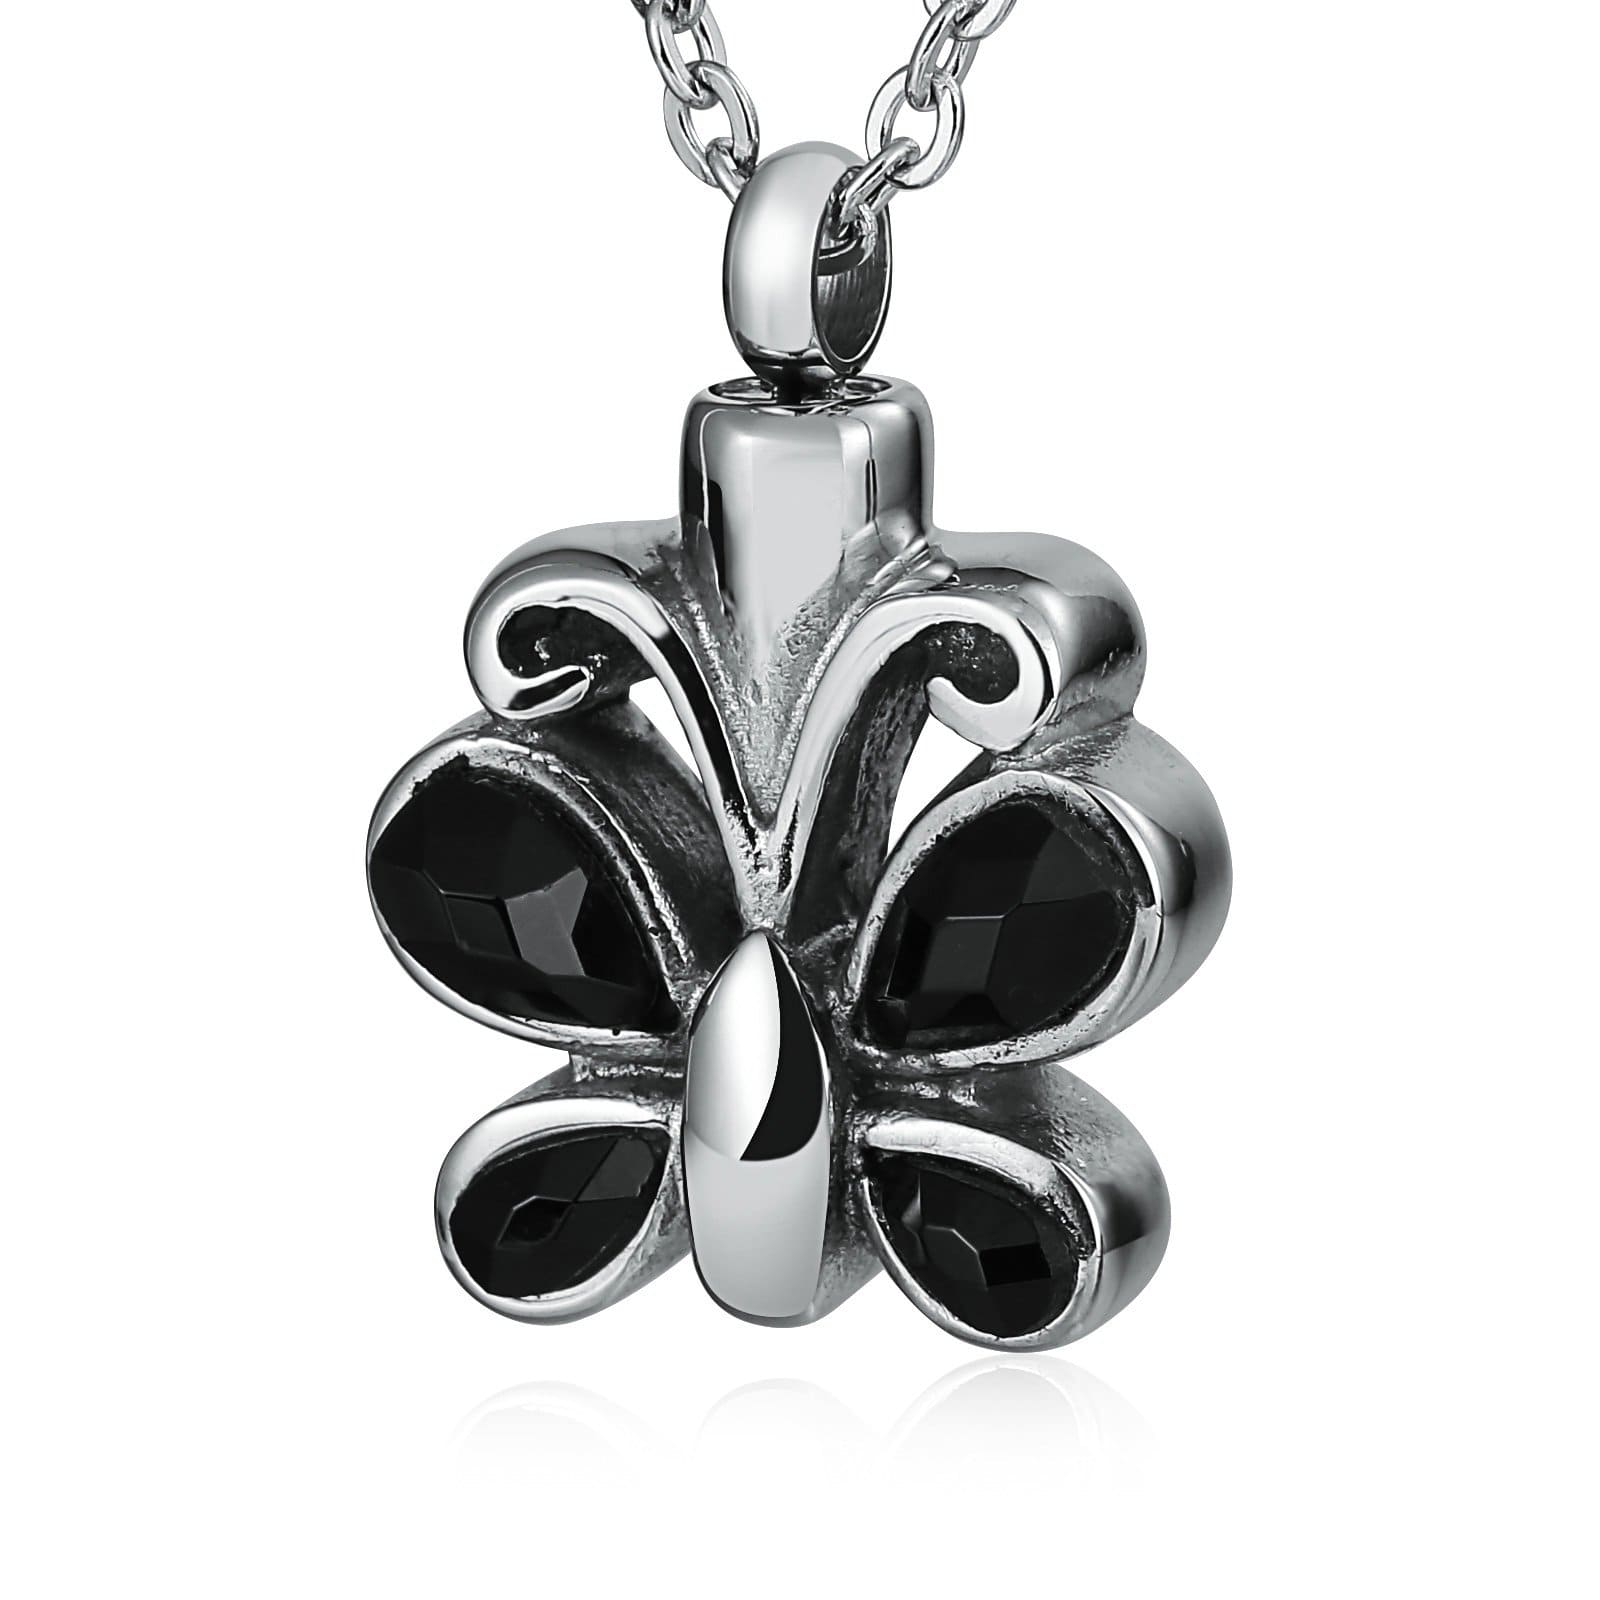 Urn Necklace Cremation Necklace Stainless Steel Black 2 x 3cm